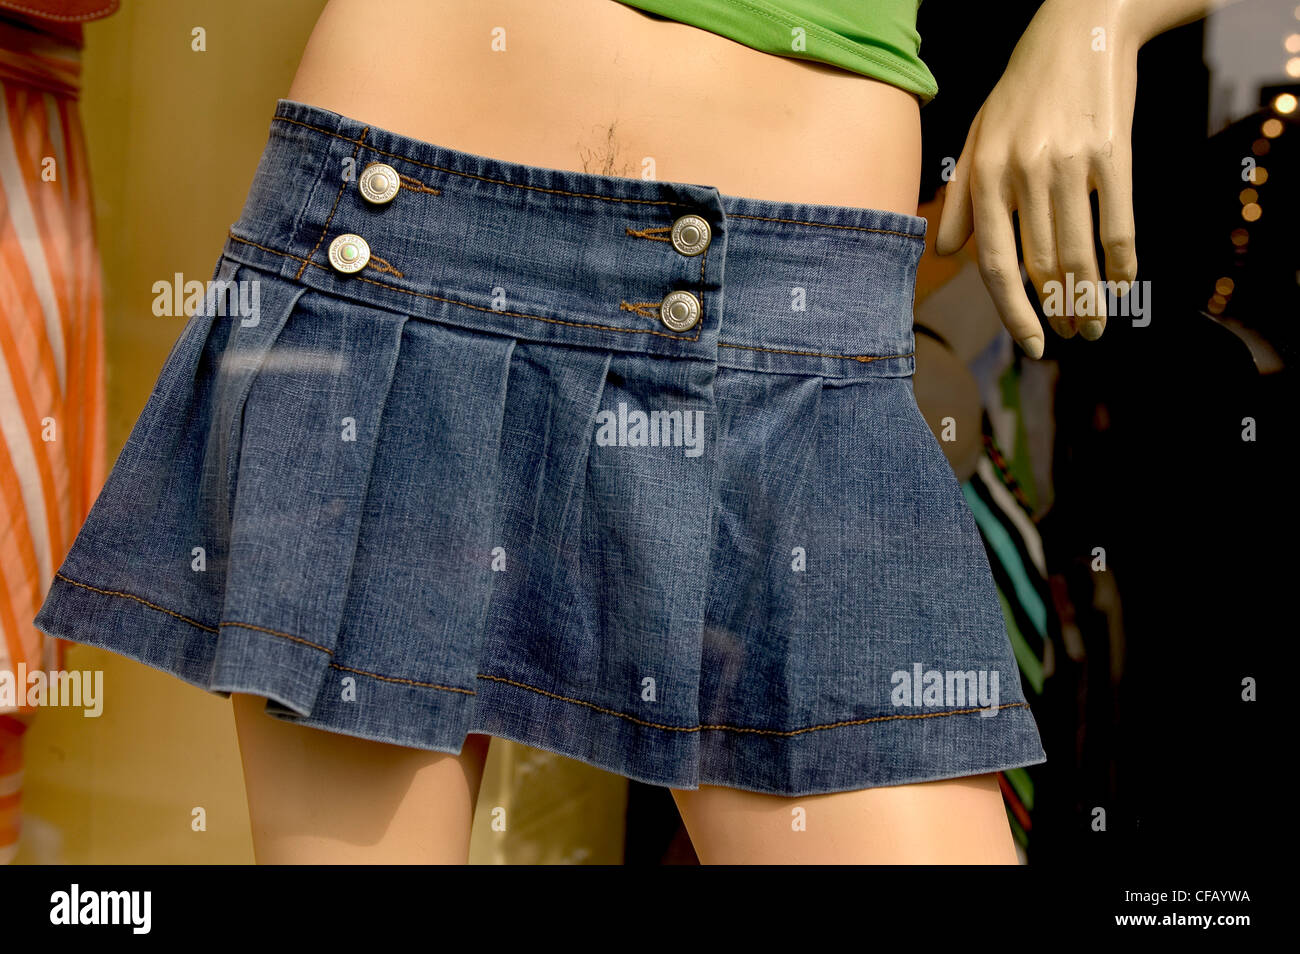 Mannequin of a girls waist and skirt. - Stock Image